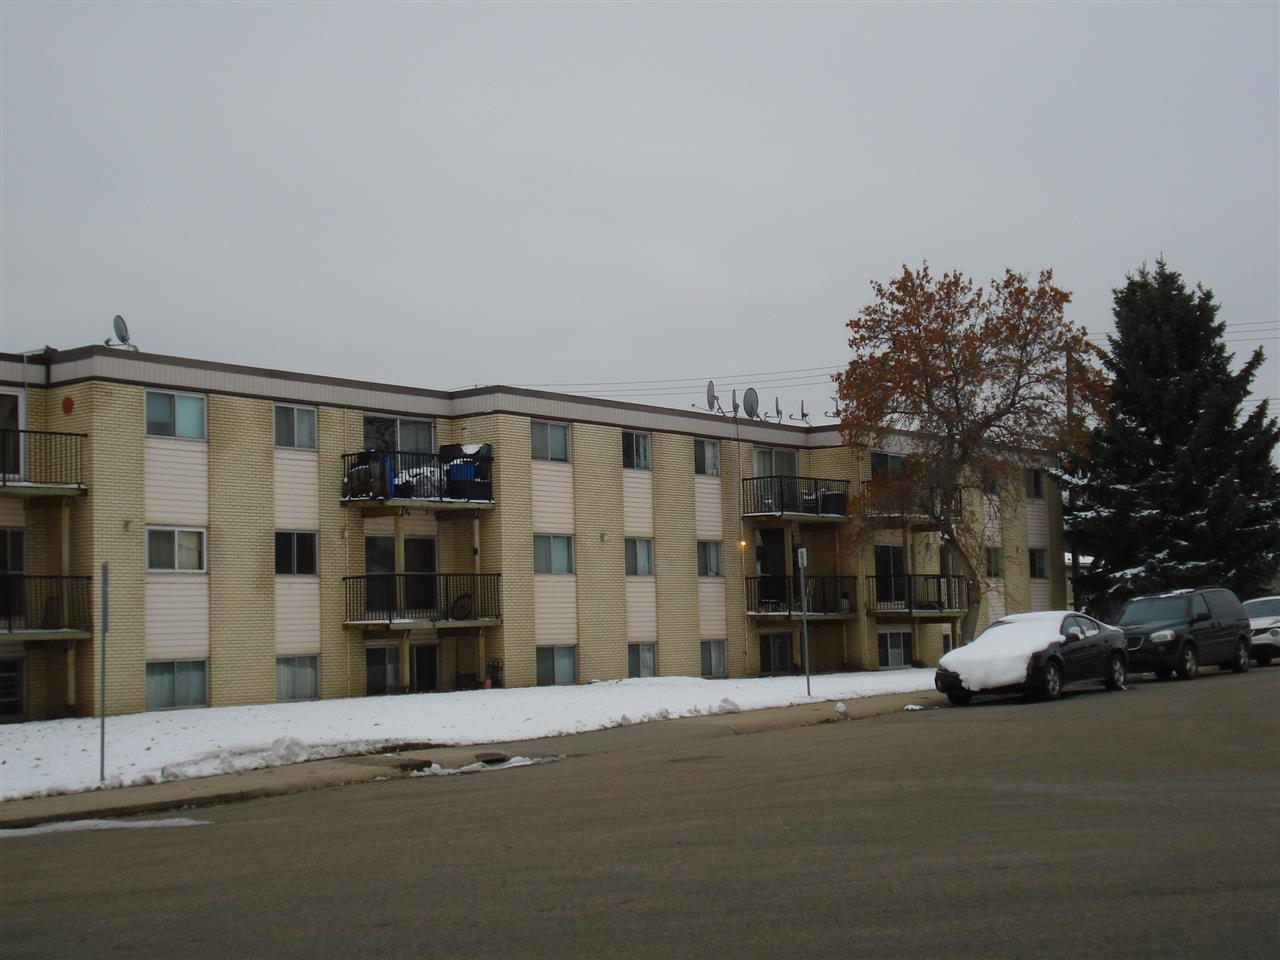 This 1 BDRM,2nd floor unit is located near the 133 AV access. Its very near to all age schools, parks, shopping and commercial/Industrial establishments especially suited for the working folk as well take The LRT to commute to anywhere else in the City. This unit offers a walk through kitchen towards the dinning area. There is a huge living room with a balcony overlooking towards the front lawn and the 133 AVE. front  living room with sliding doors to the south-west facing balcony. There is a generous sized bedroom adjoining the living room and the 4 piece bath. The large windows throughout offer plenty of natural light. There are spacious closets plus a huge storage space. Great opportunity for a first time home owner, students or investors. Phenominal value at $66,900.